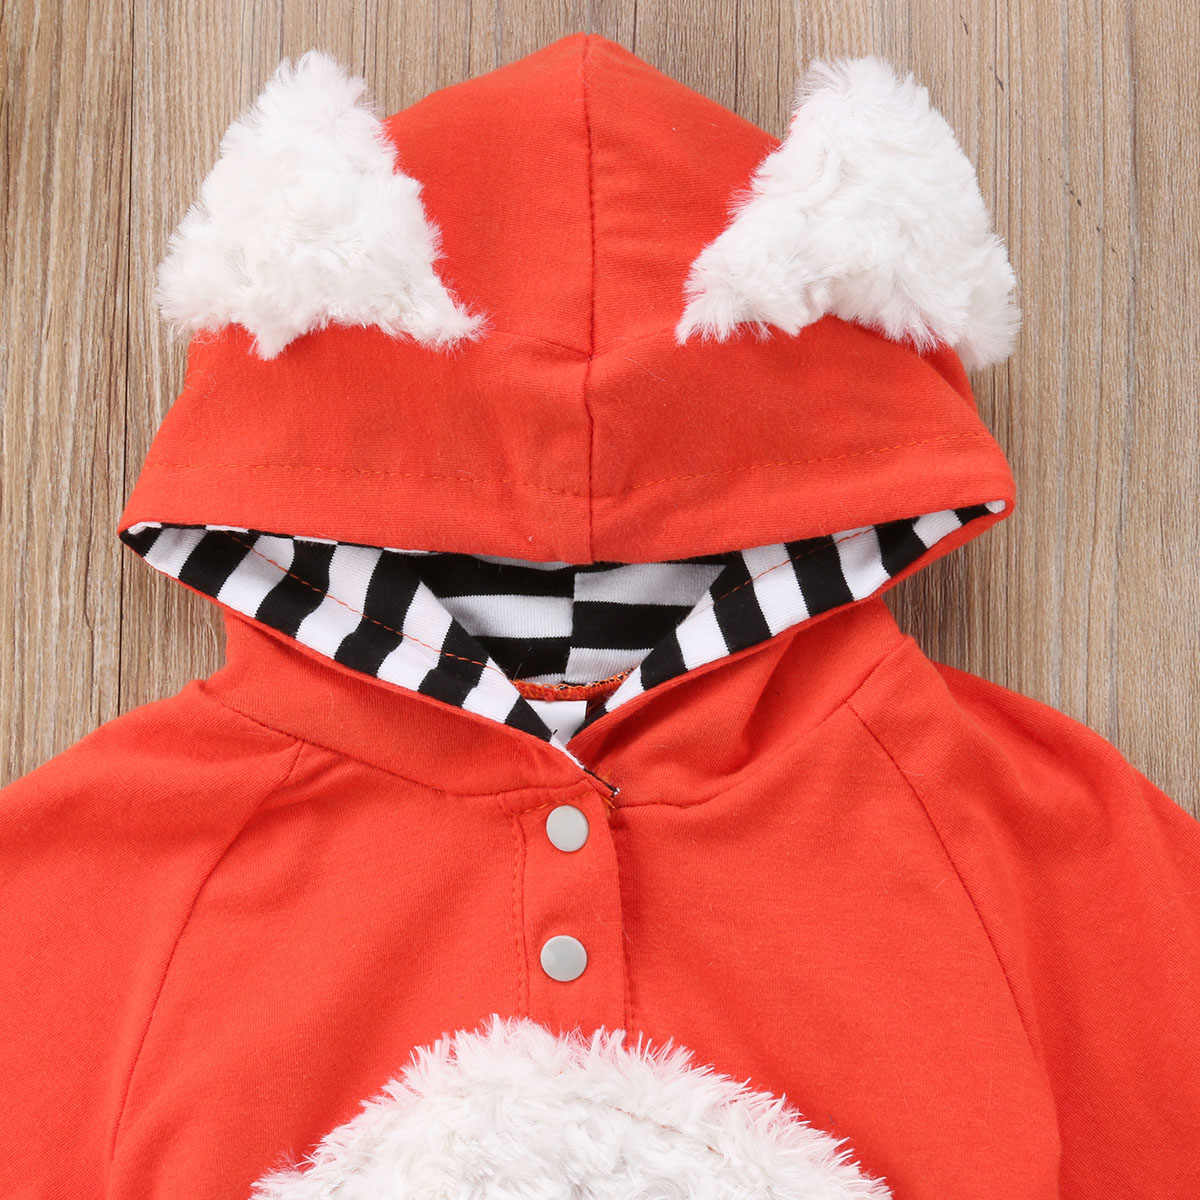 d784953da Detail Feedback Questions about Cute Winter Newborn Rompers Baby ...